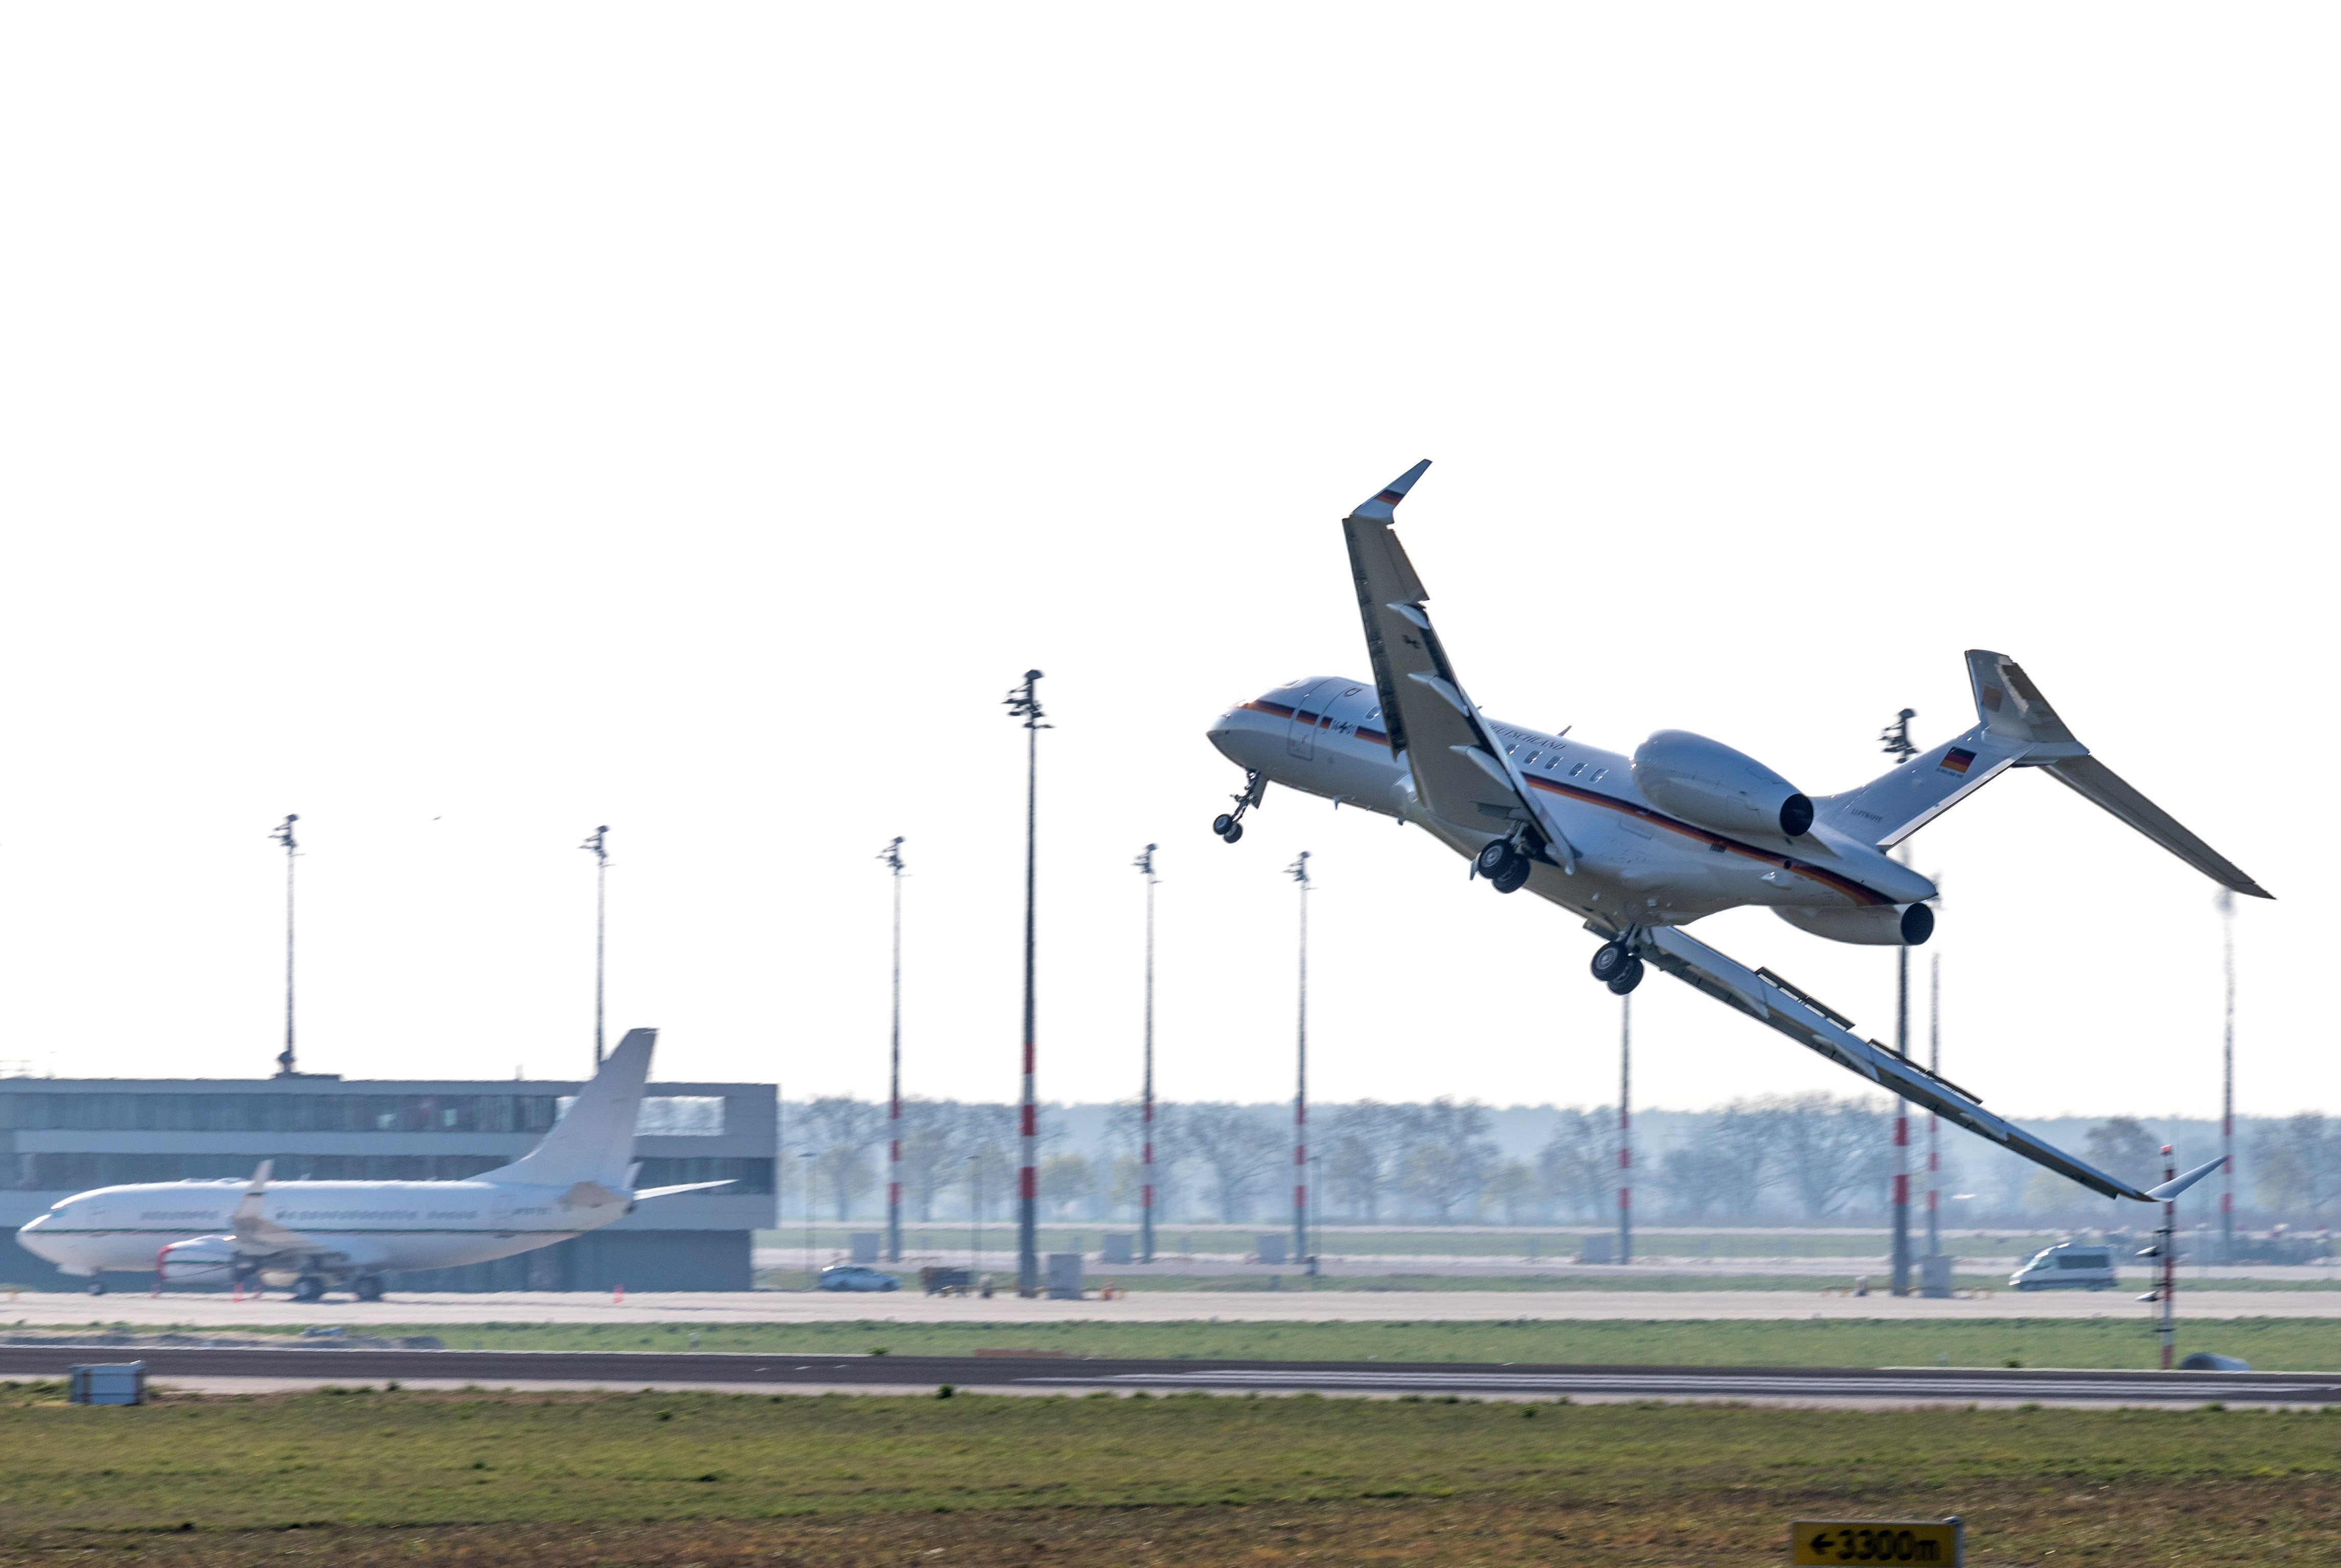 A Global 5000 jet of the government has problems landing at Schoenefeld Airport in Berlin, on April 16, 2019. Following a malfunction shortly after take-off, the aircraft turned back to Berlin-Schoenefeld Airport with major problems.